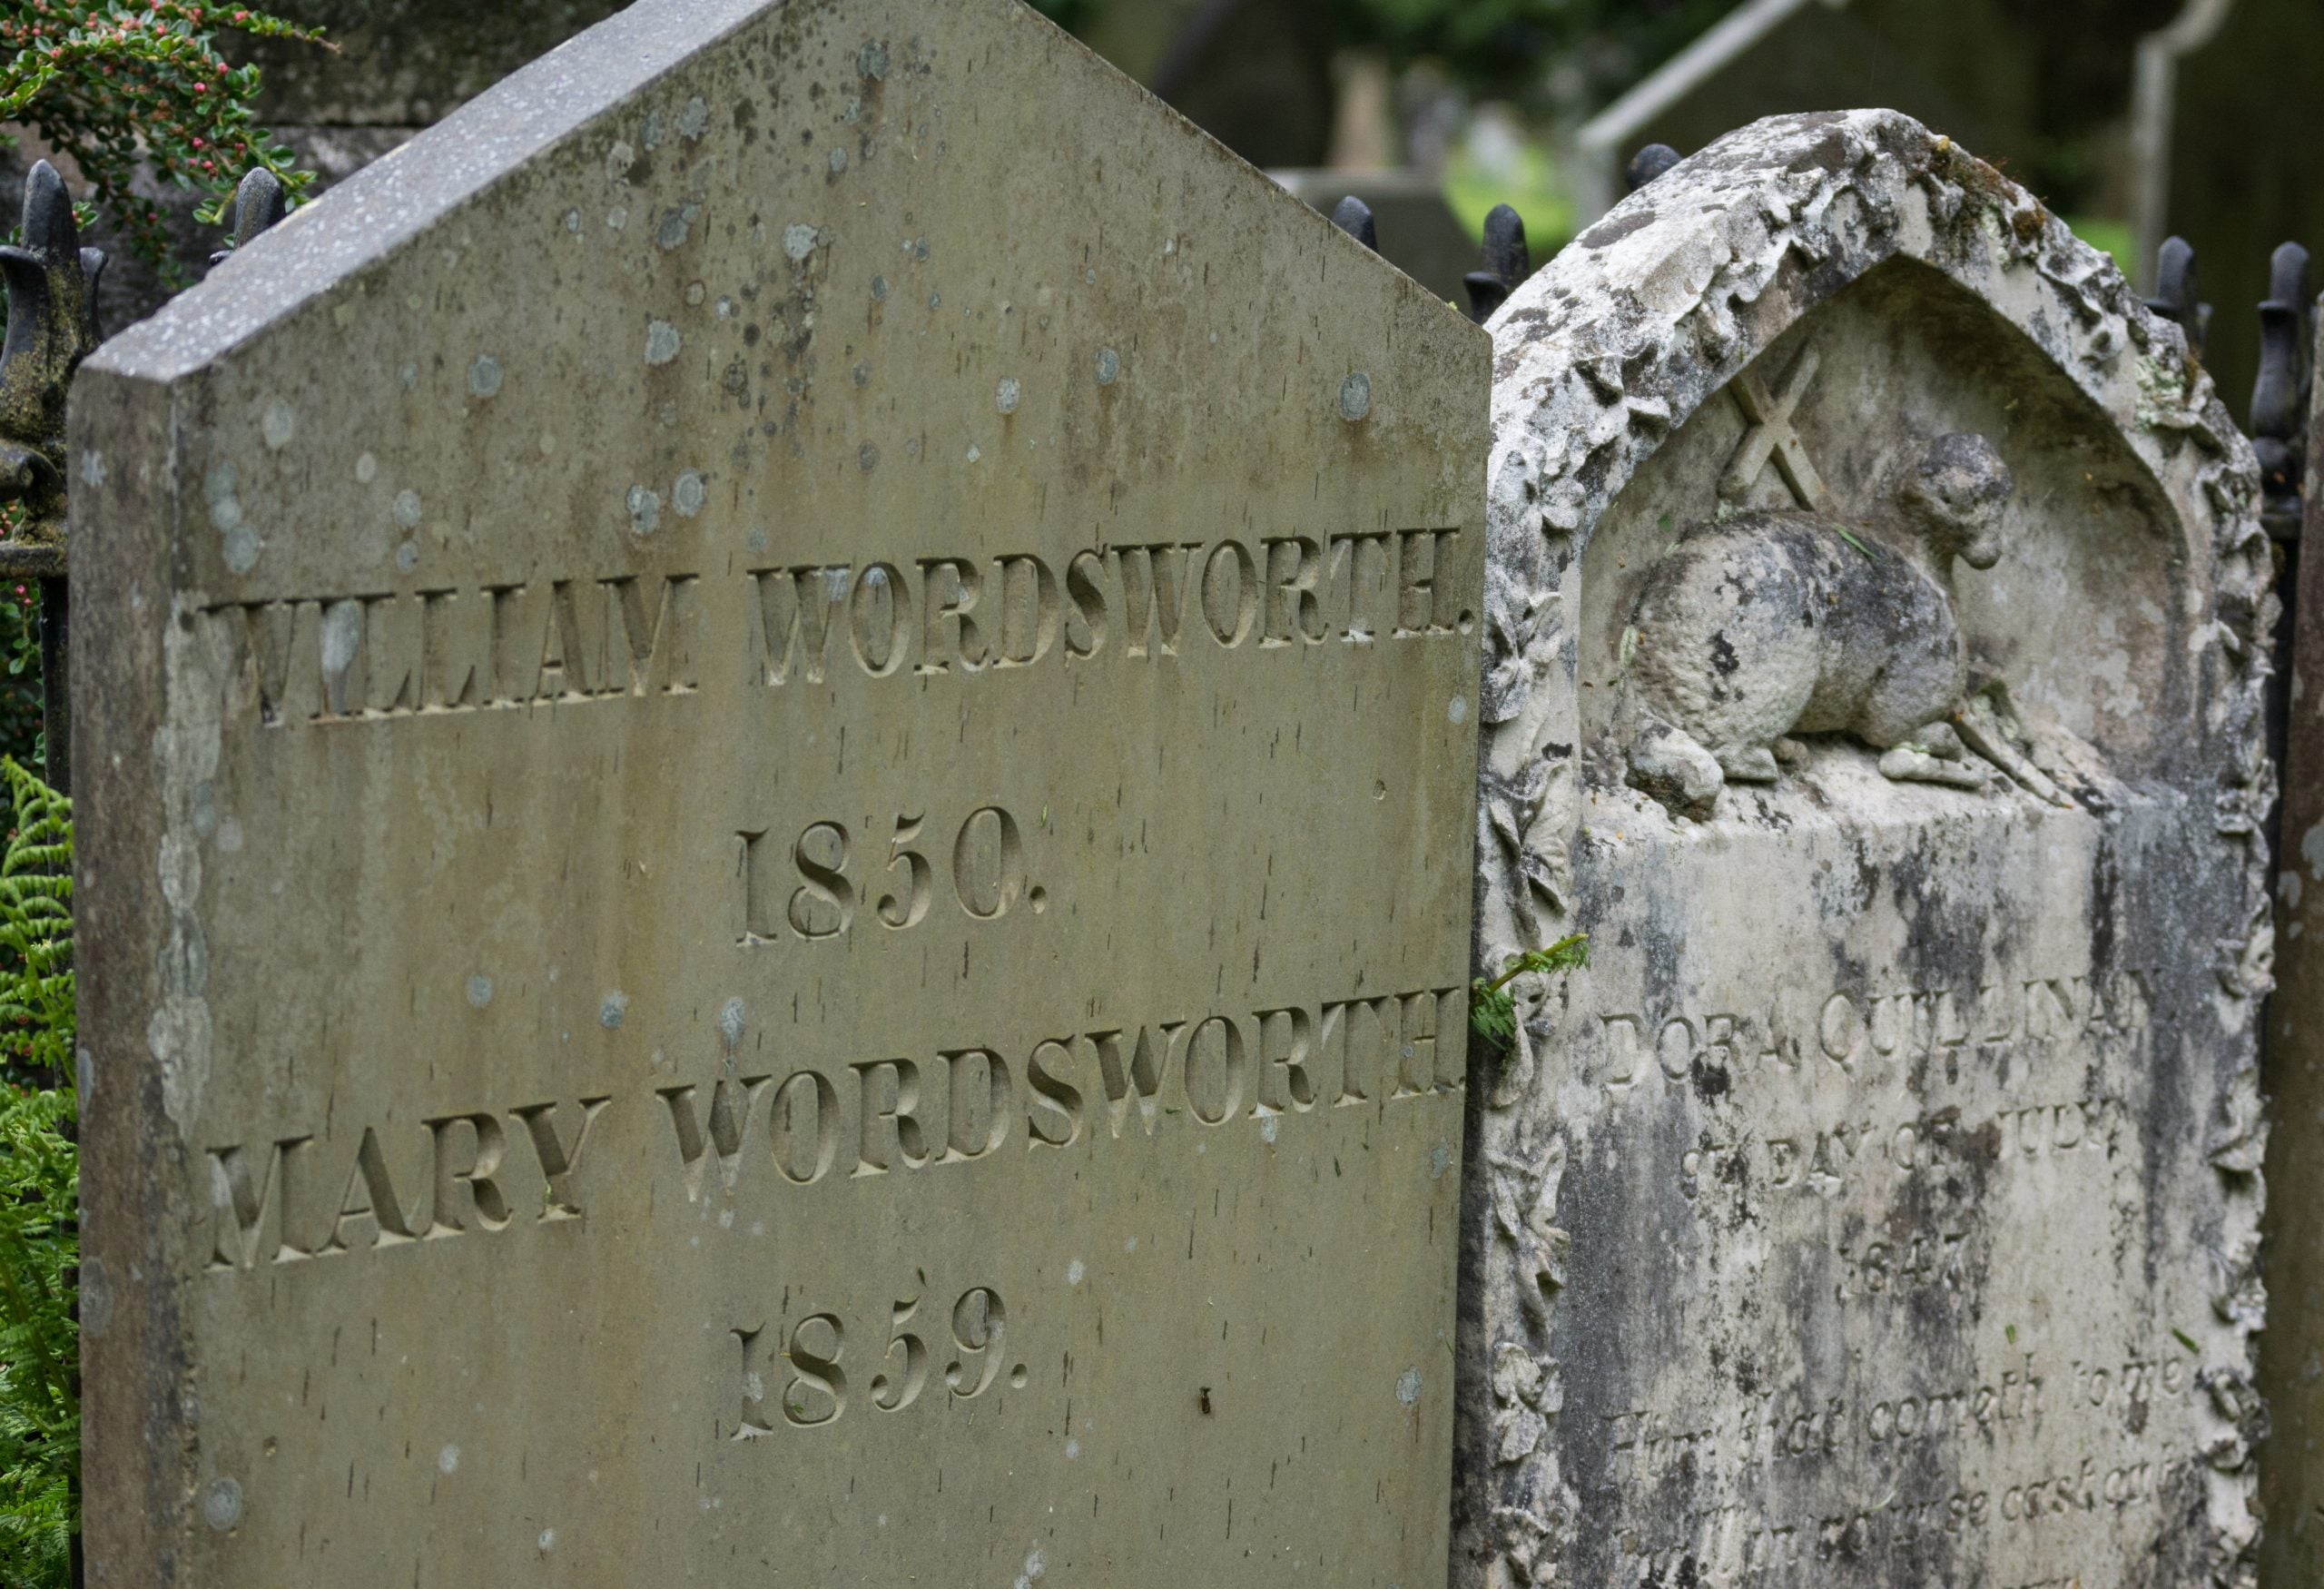 Following Wordsworth's footsteps